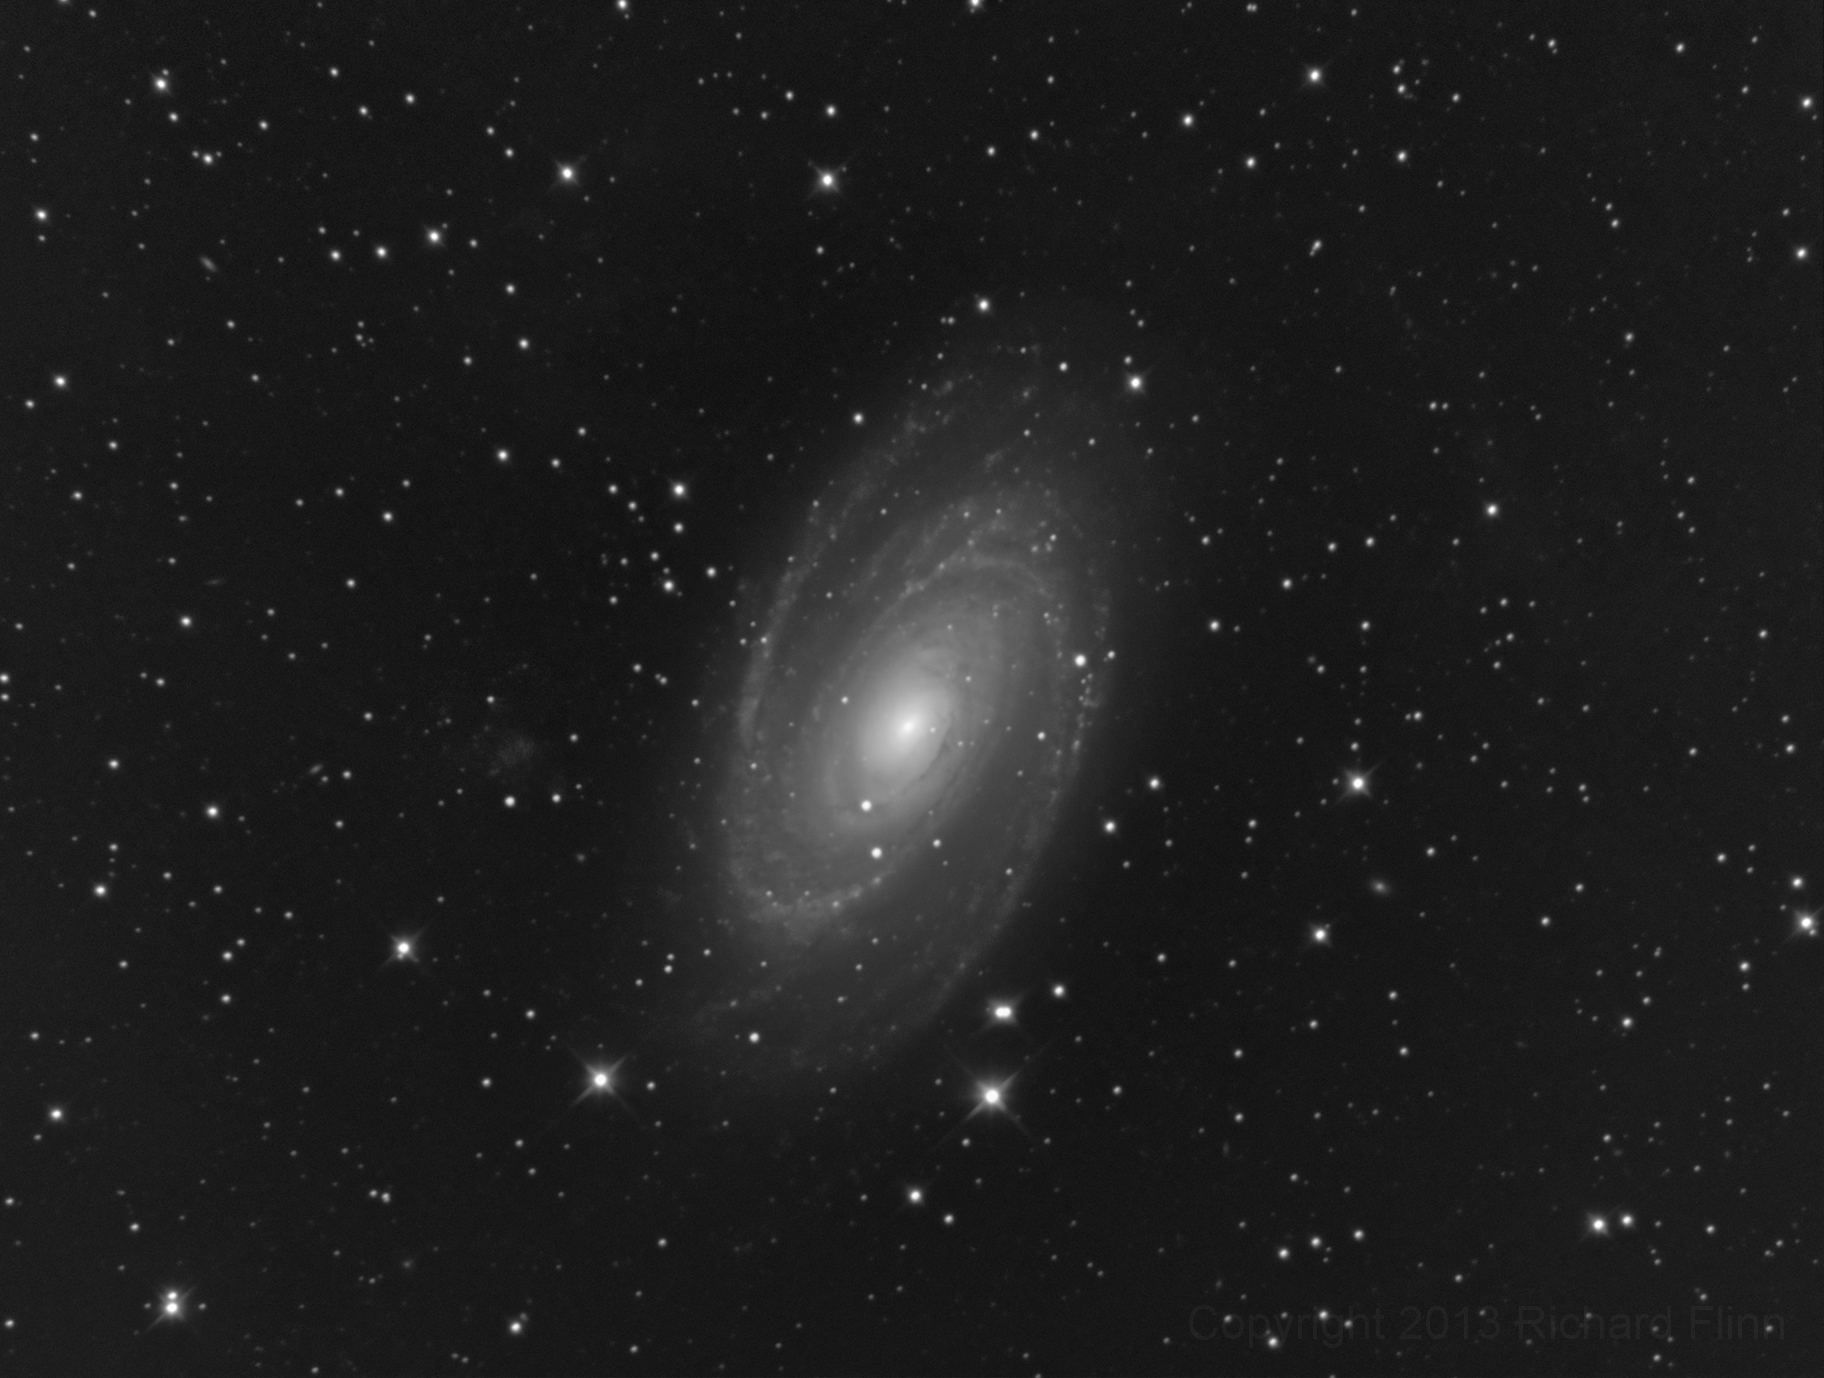 Bode's Galaxy (M81 or NGC 3031) - spiral galaxy in the constellation Ursa Major